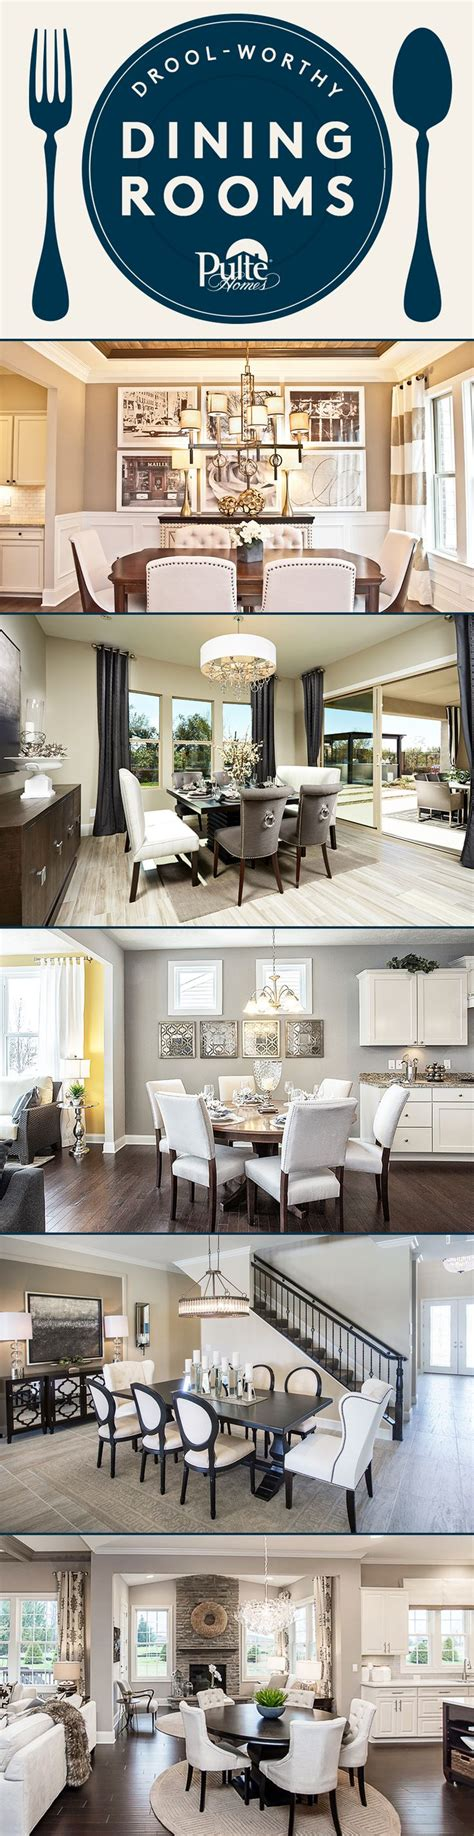 pulte home design center home design and style pulte home designs home design plan